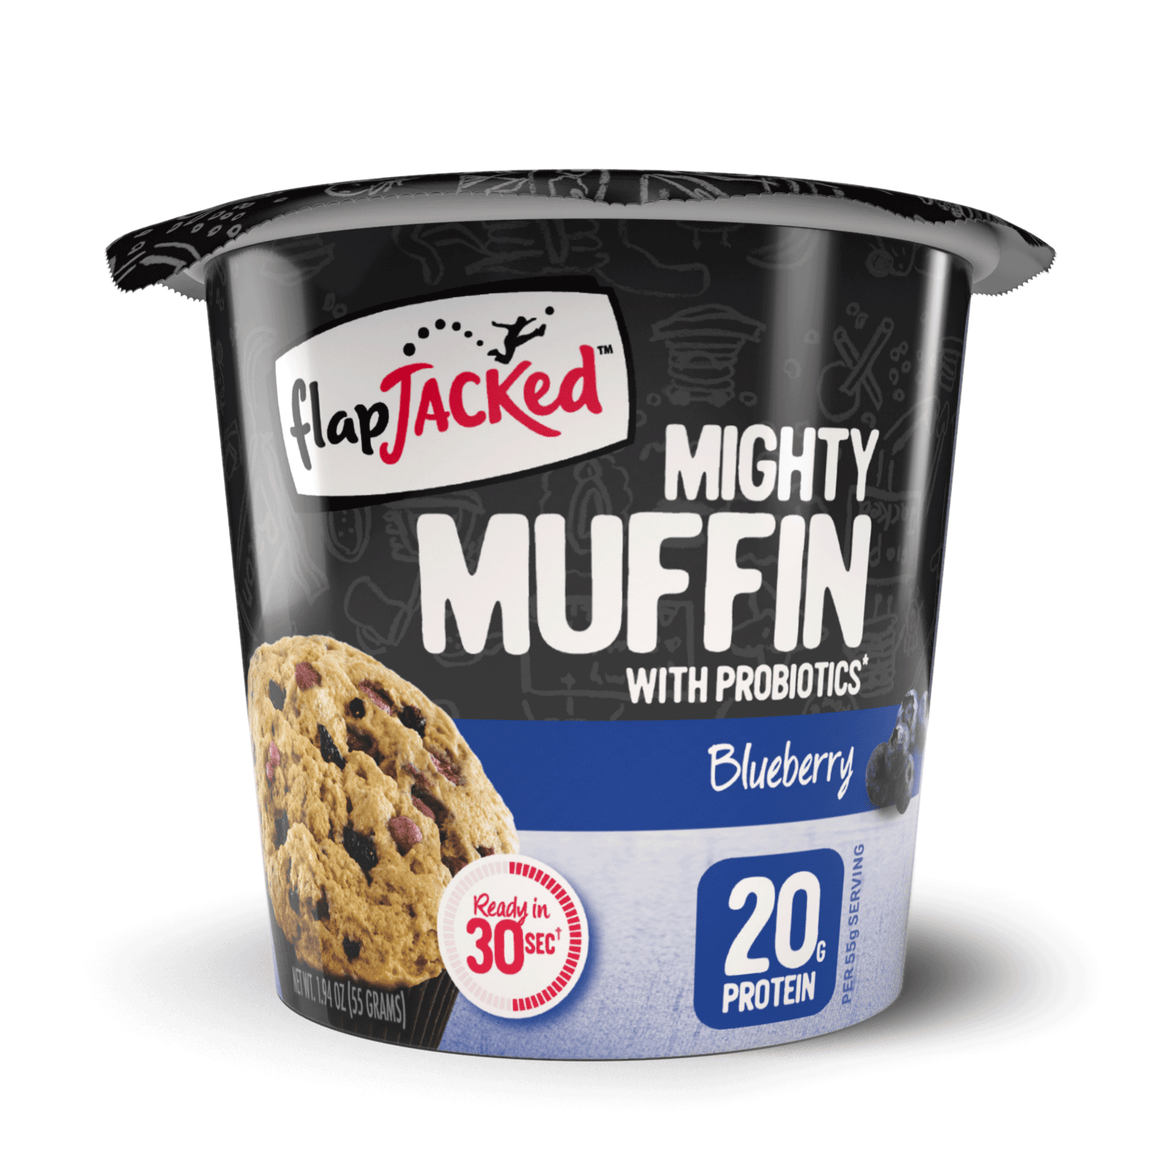 Blueberry Mighty Muffin